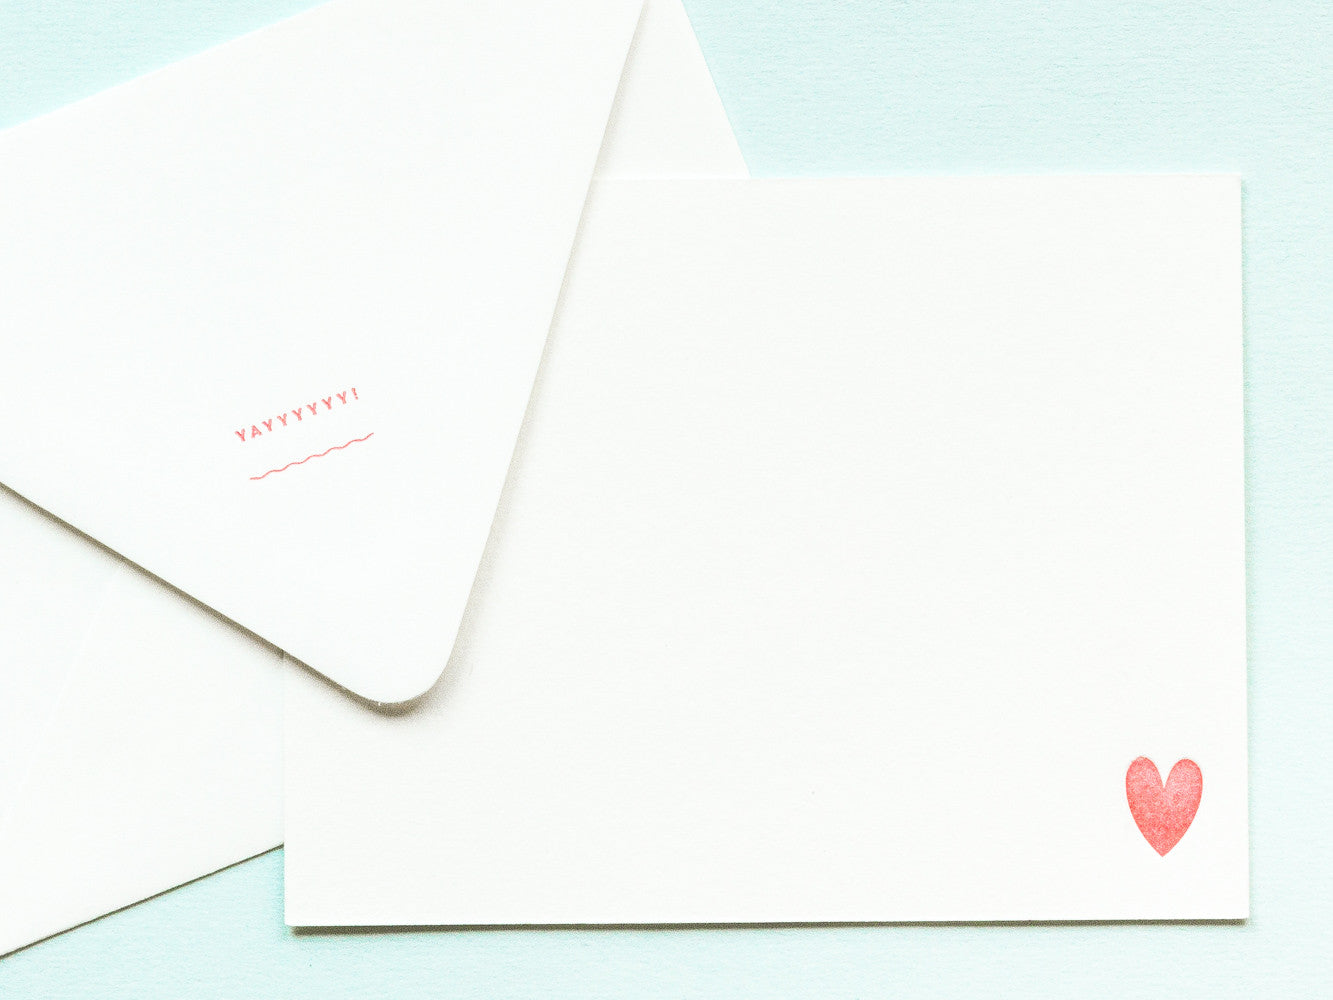 Yayyyyyy! Notevelope & Heart Notecard